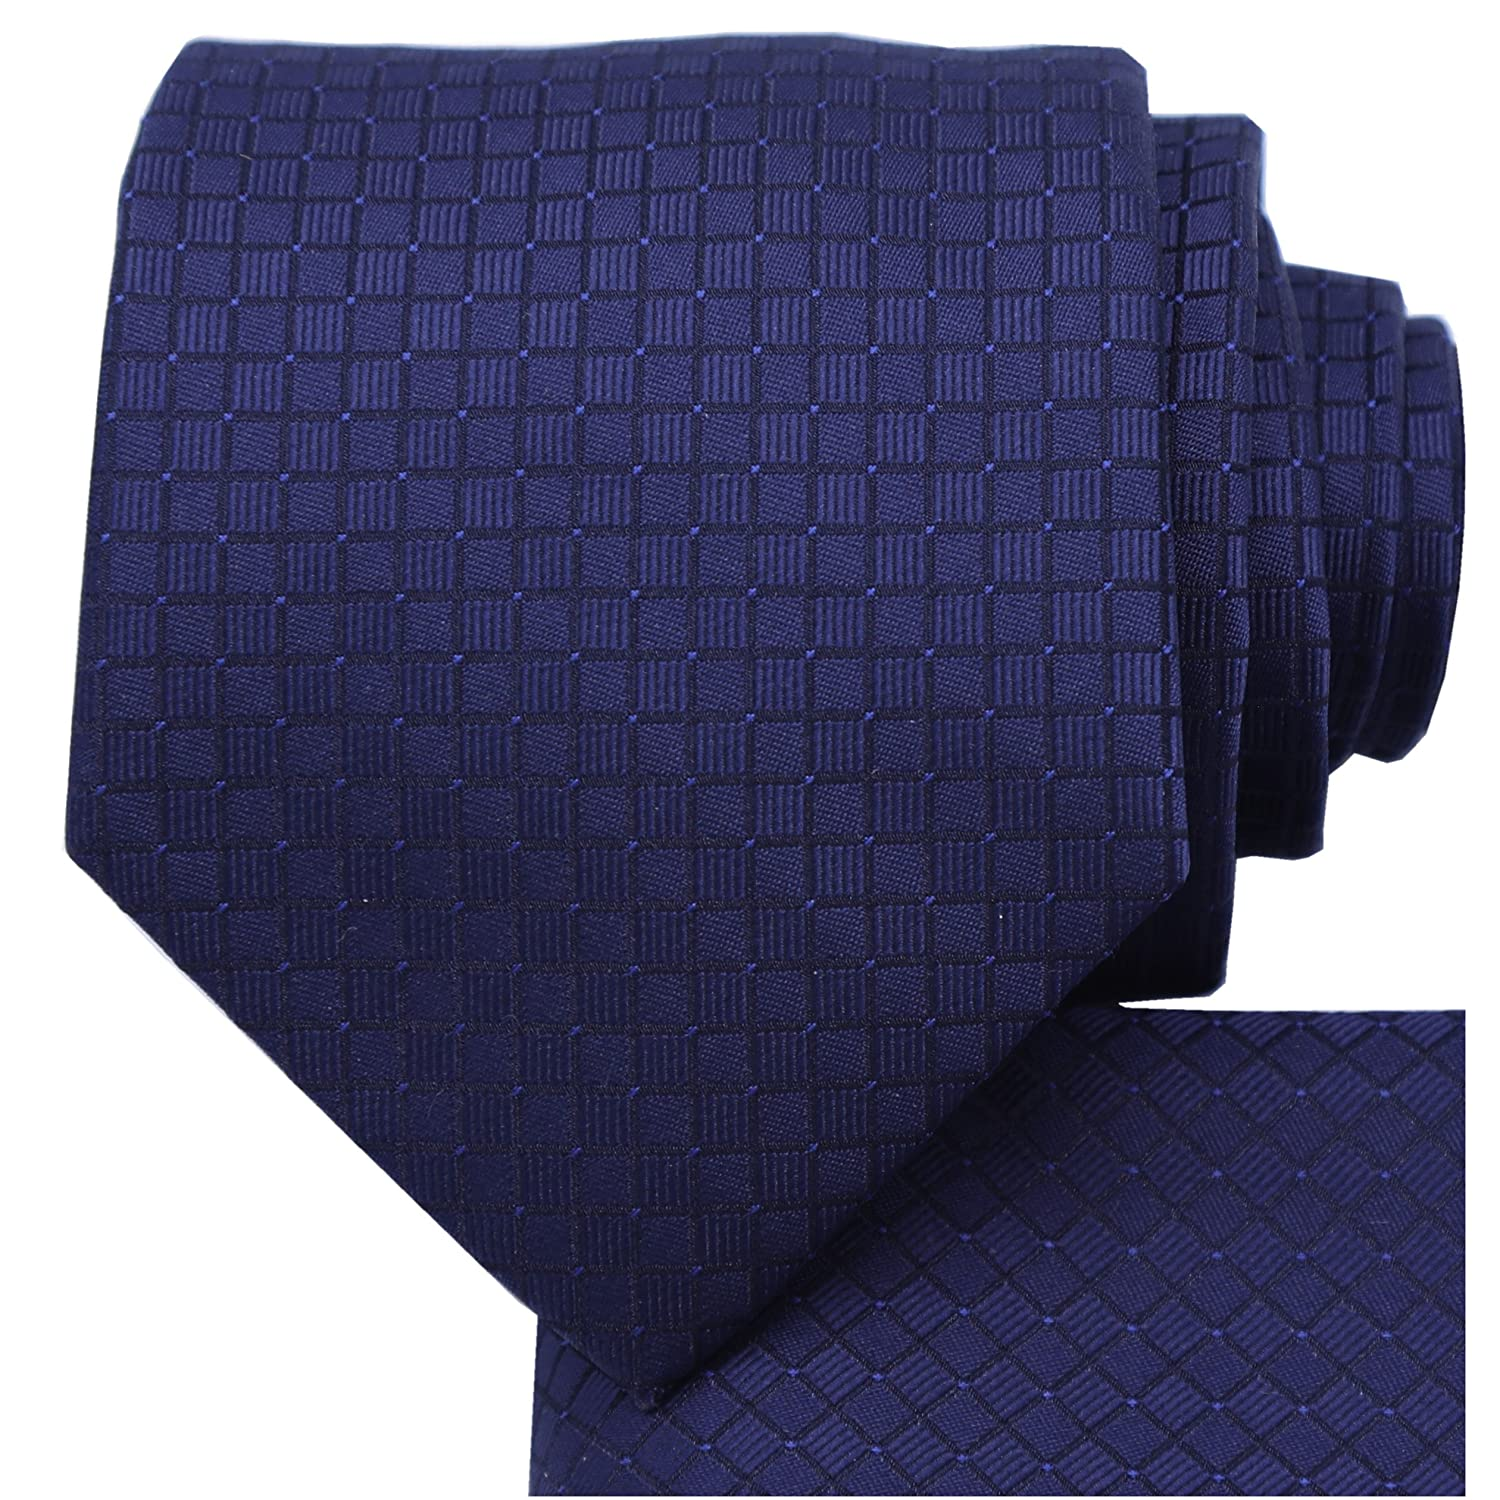 KissTies Ties for Men Solid Color Necktie + Gift Box KT0121